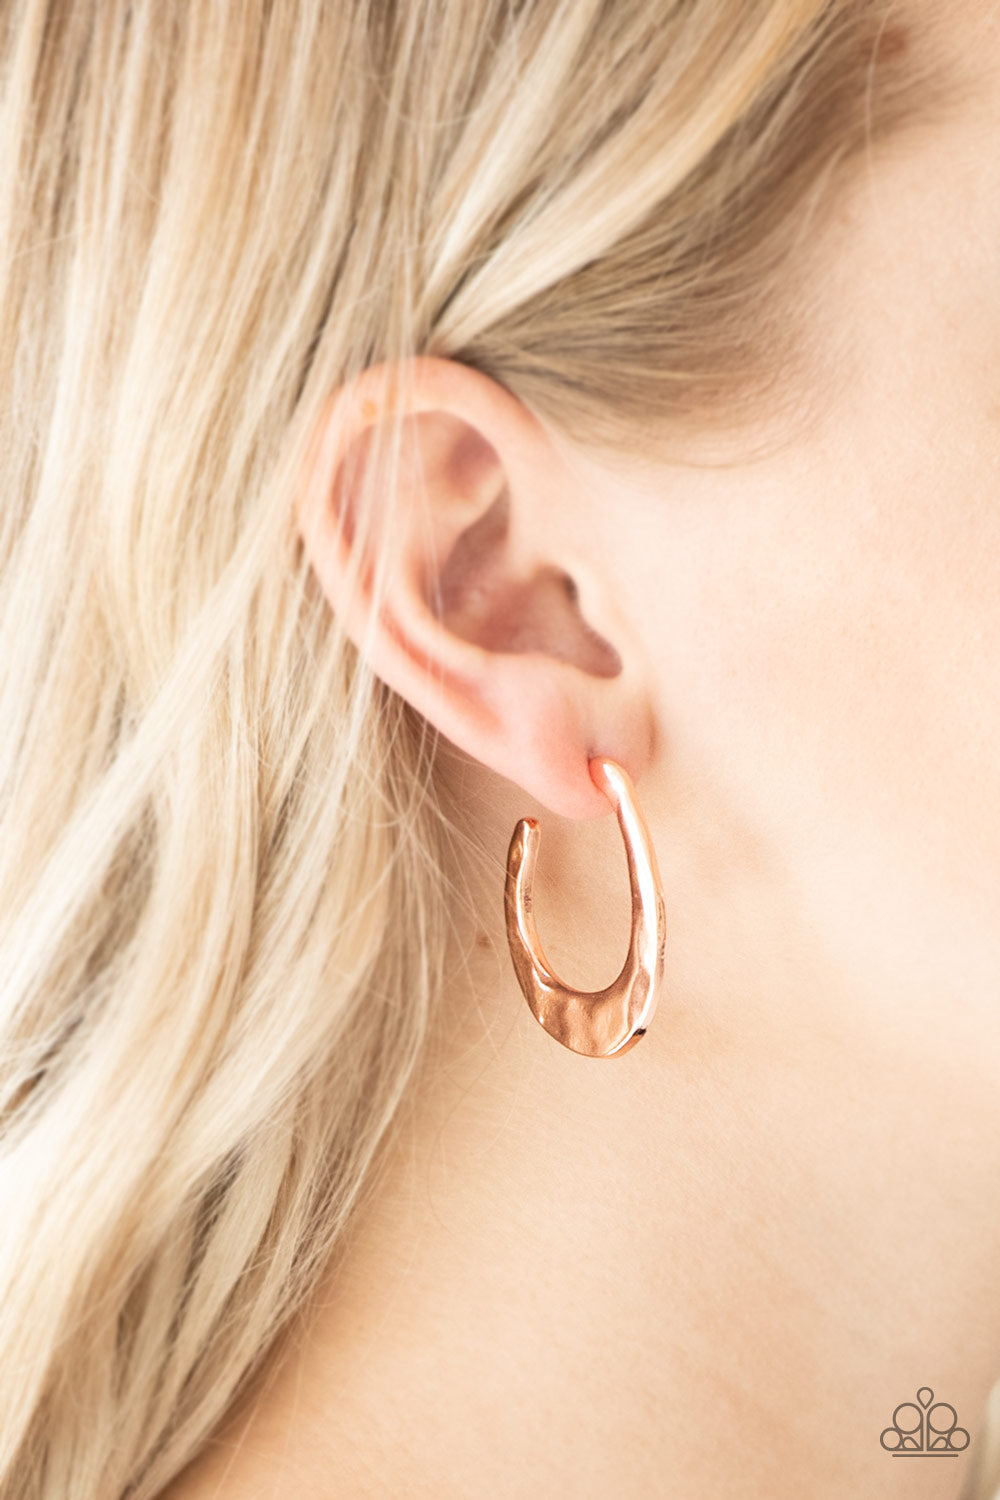 Paparazzi - HOOP Me UP! - Copper Earrings - Classy Jewels by Linda